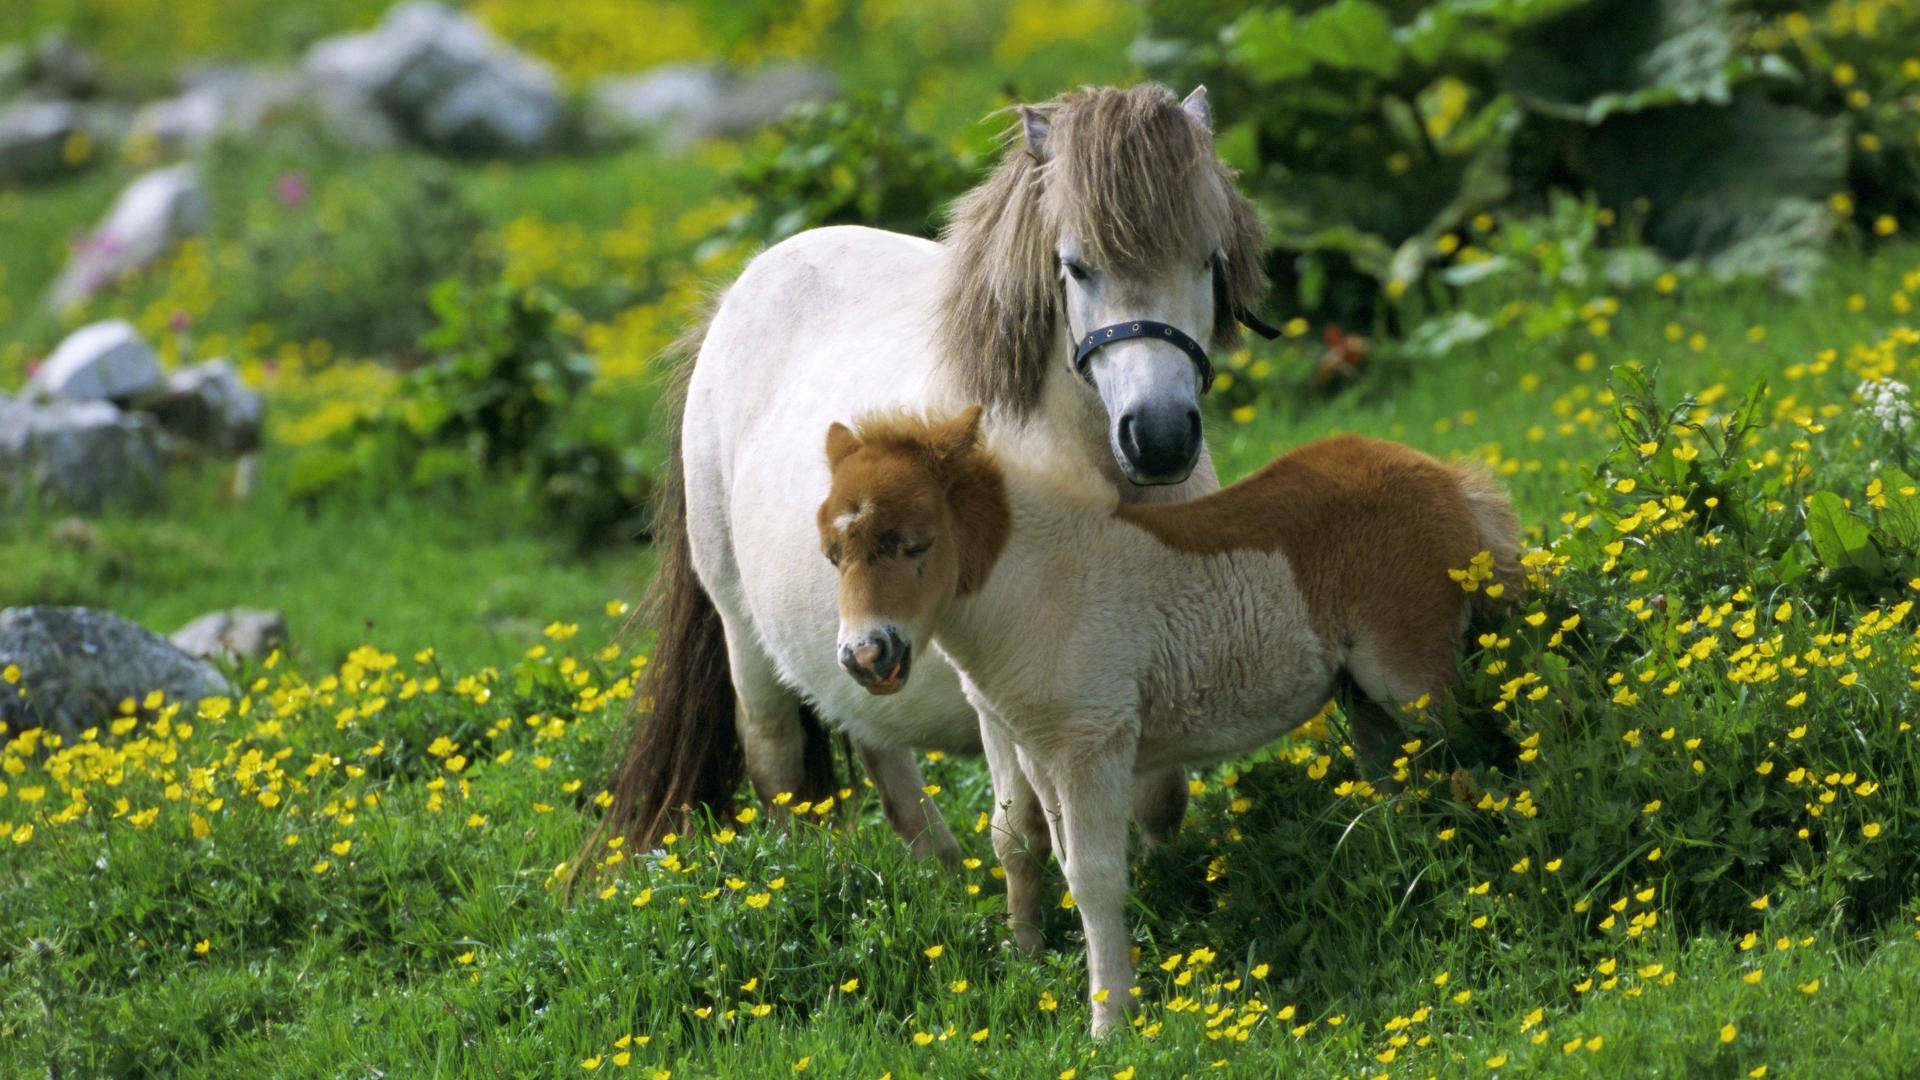 Cute Horse Cub | Animals Wallpapers